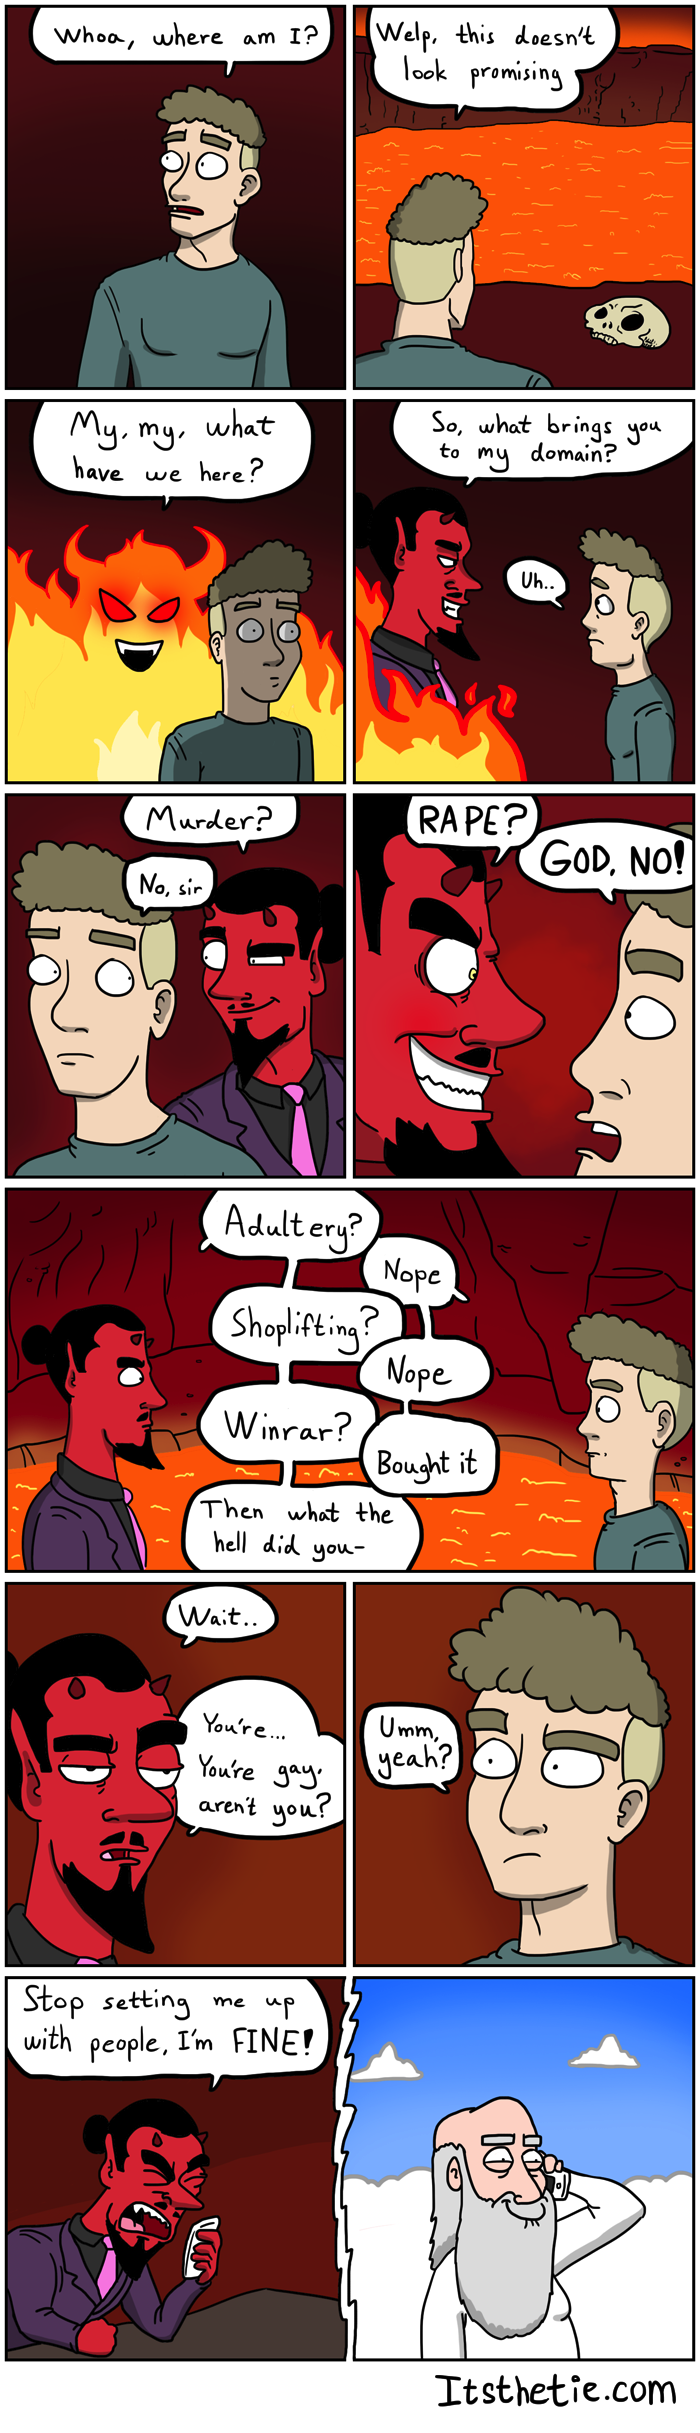 A gay goes to hell...